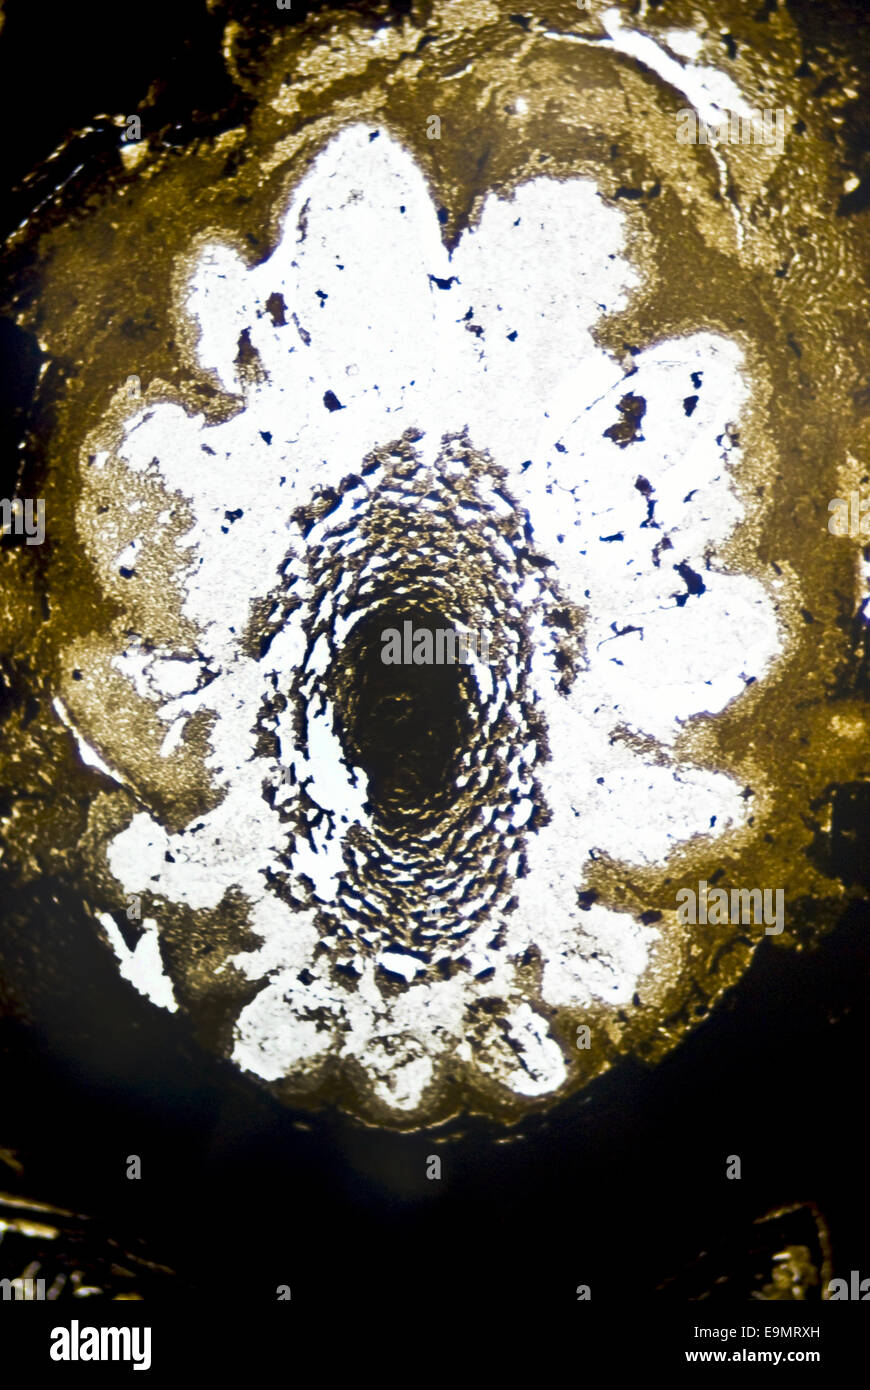 Microscopic soot particles - Stock Image